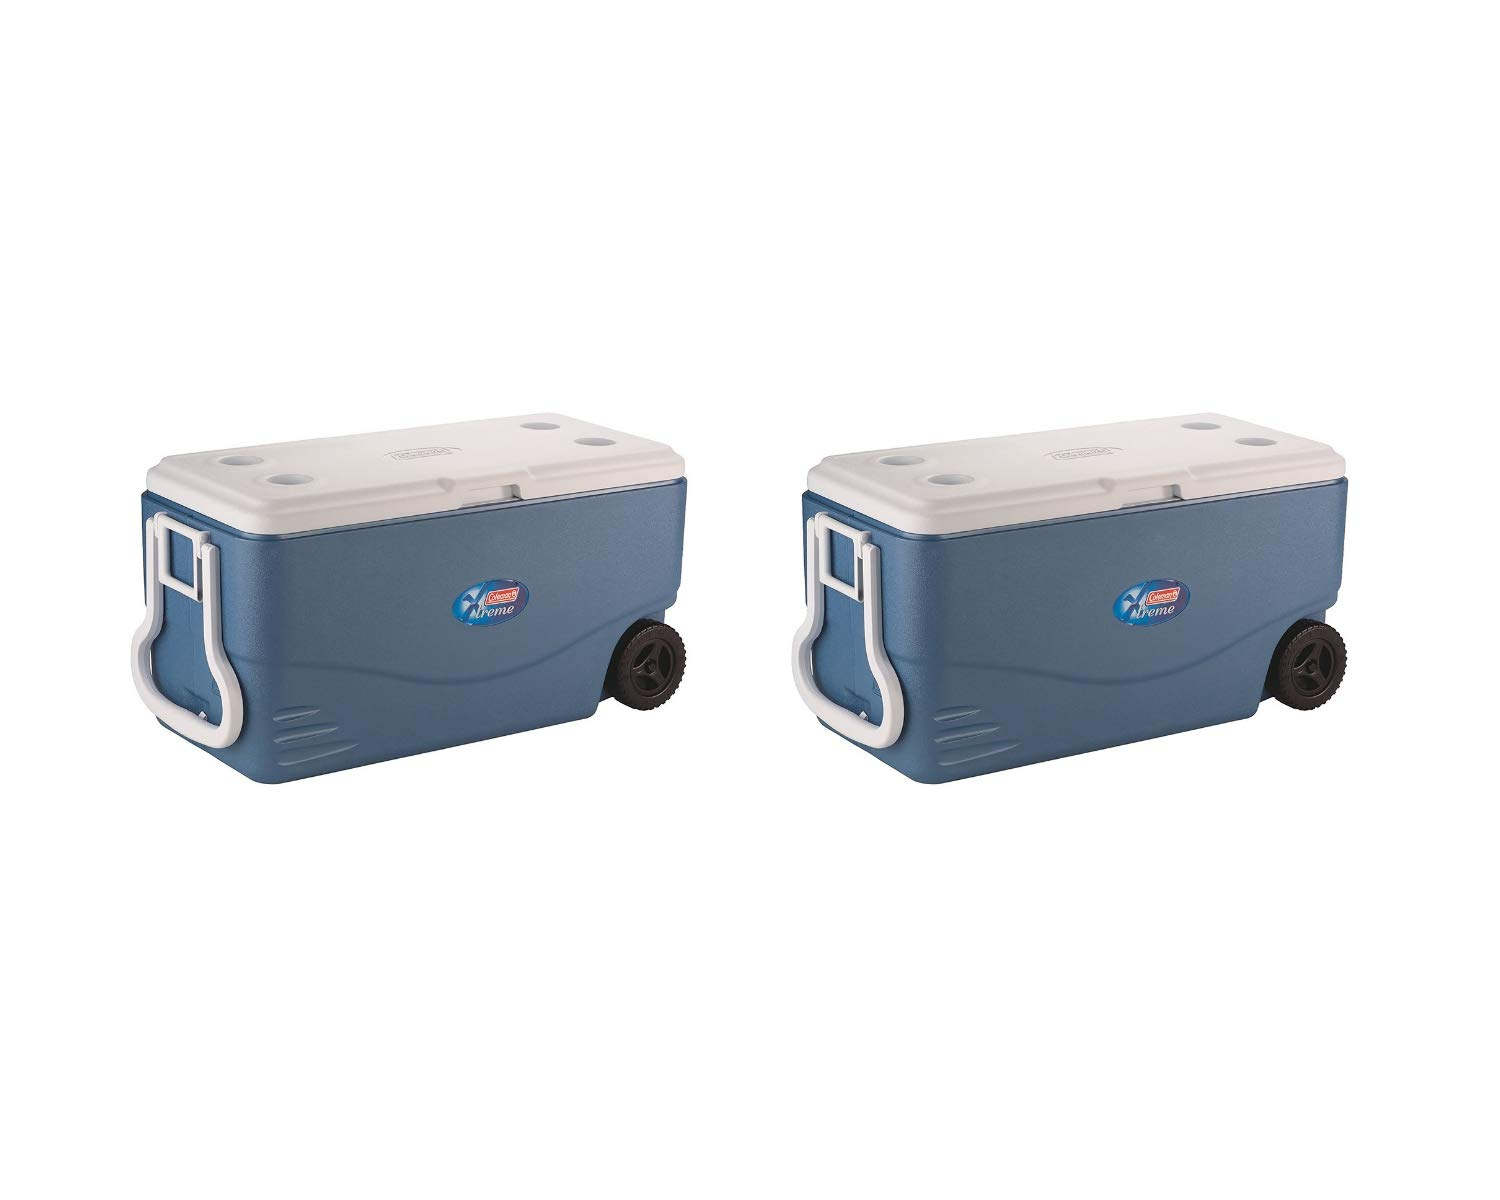 Coleman 100-Quart Xtreme 5-Day Heavy-Duty Cooler with Wheels, Blue (2 Set, 100-Quart, Cooler, Blue)